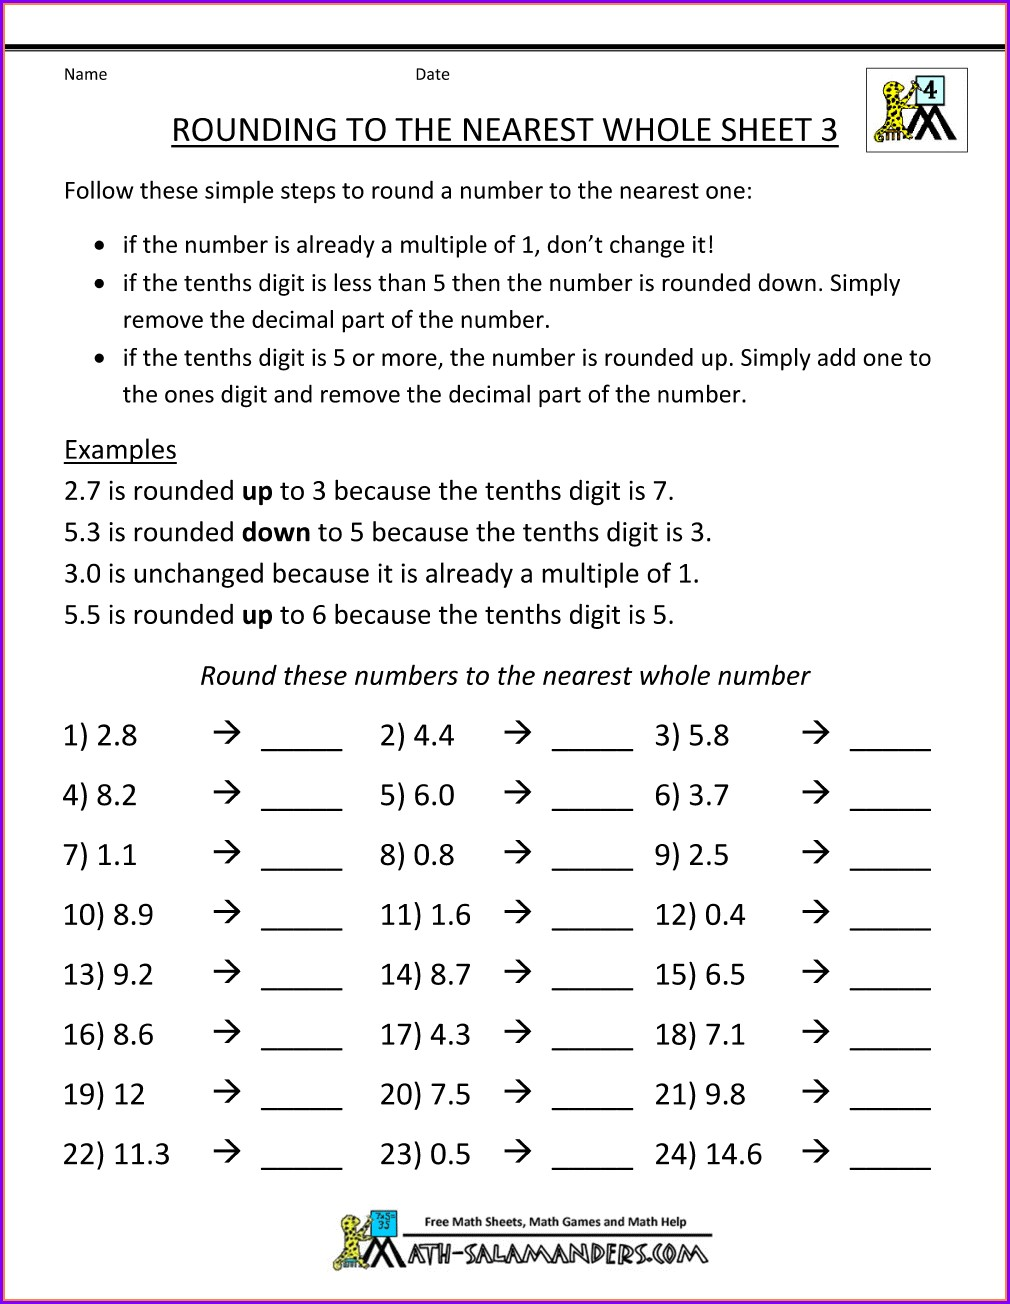 Rounding Whole Numbers And Decimals Worksheet Answers